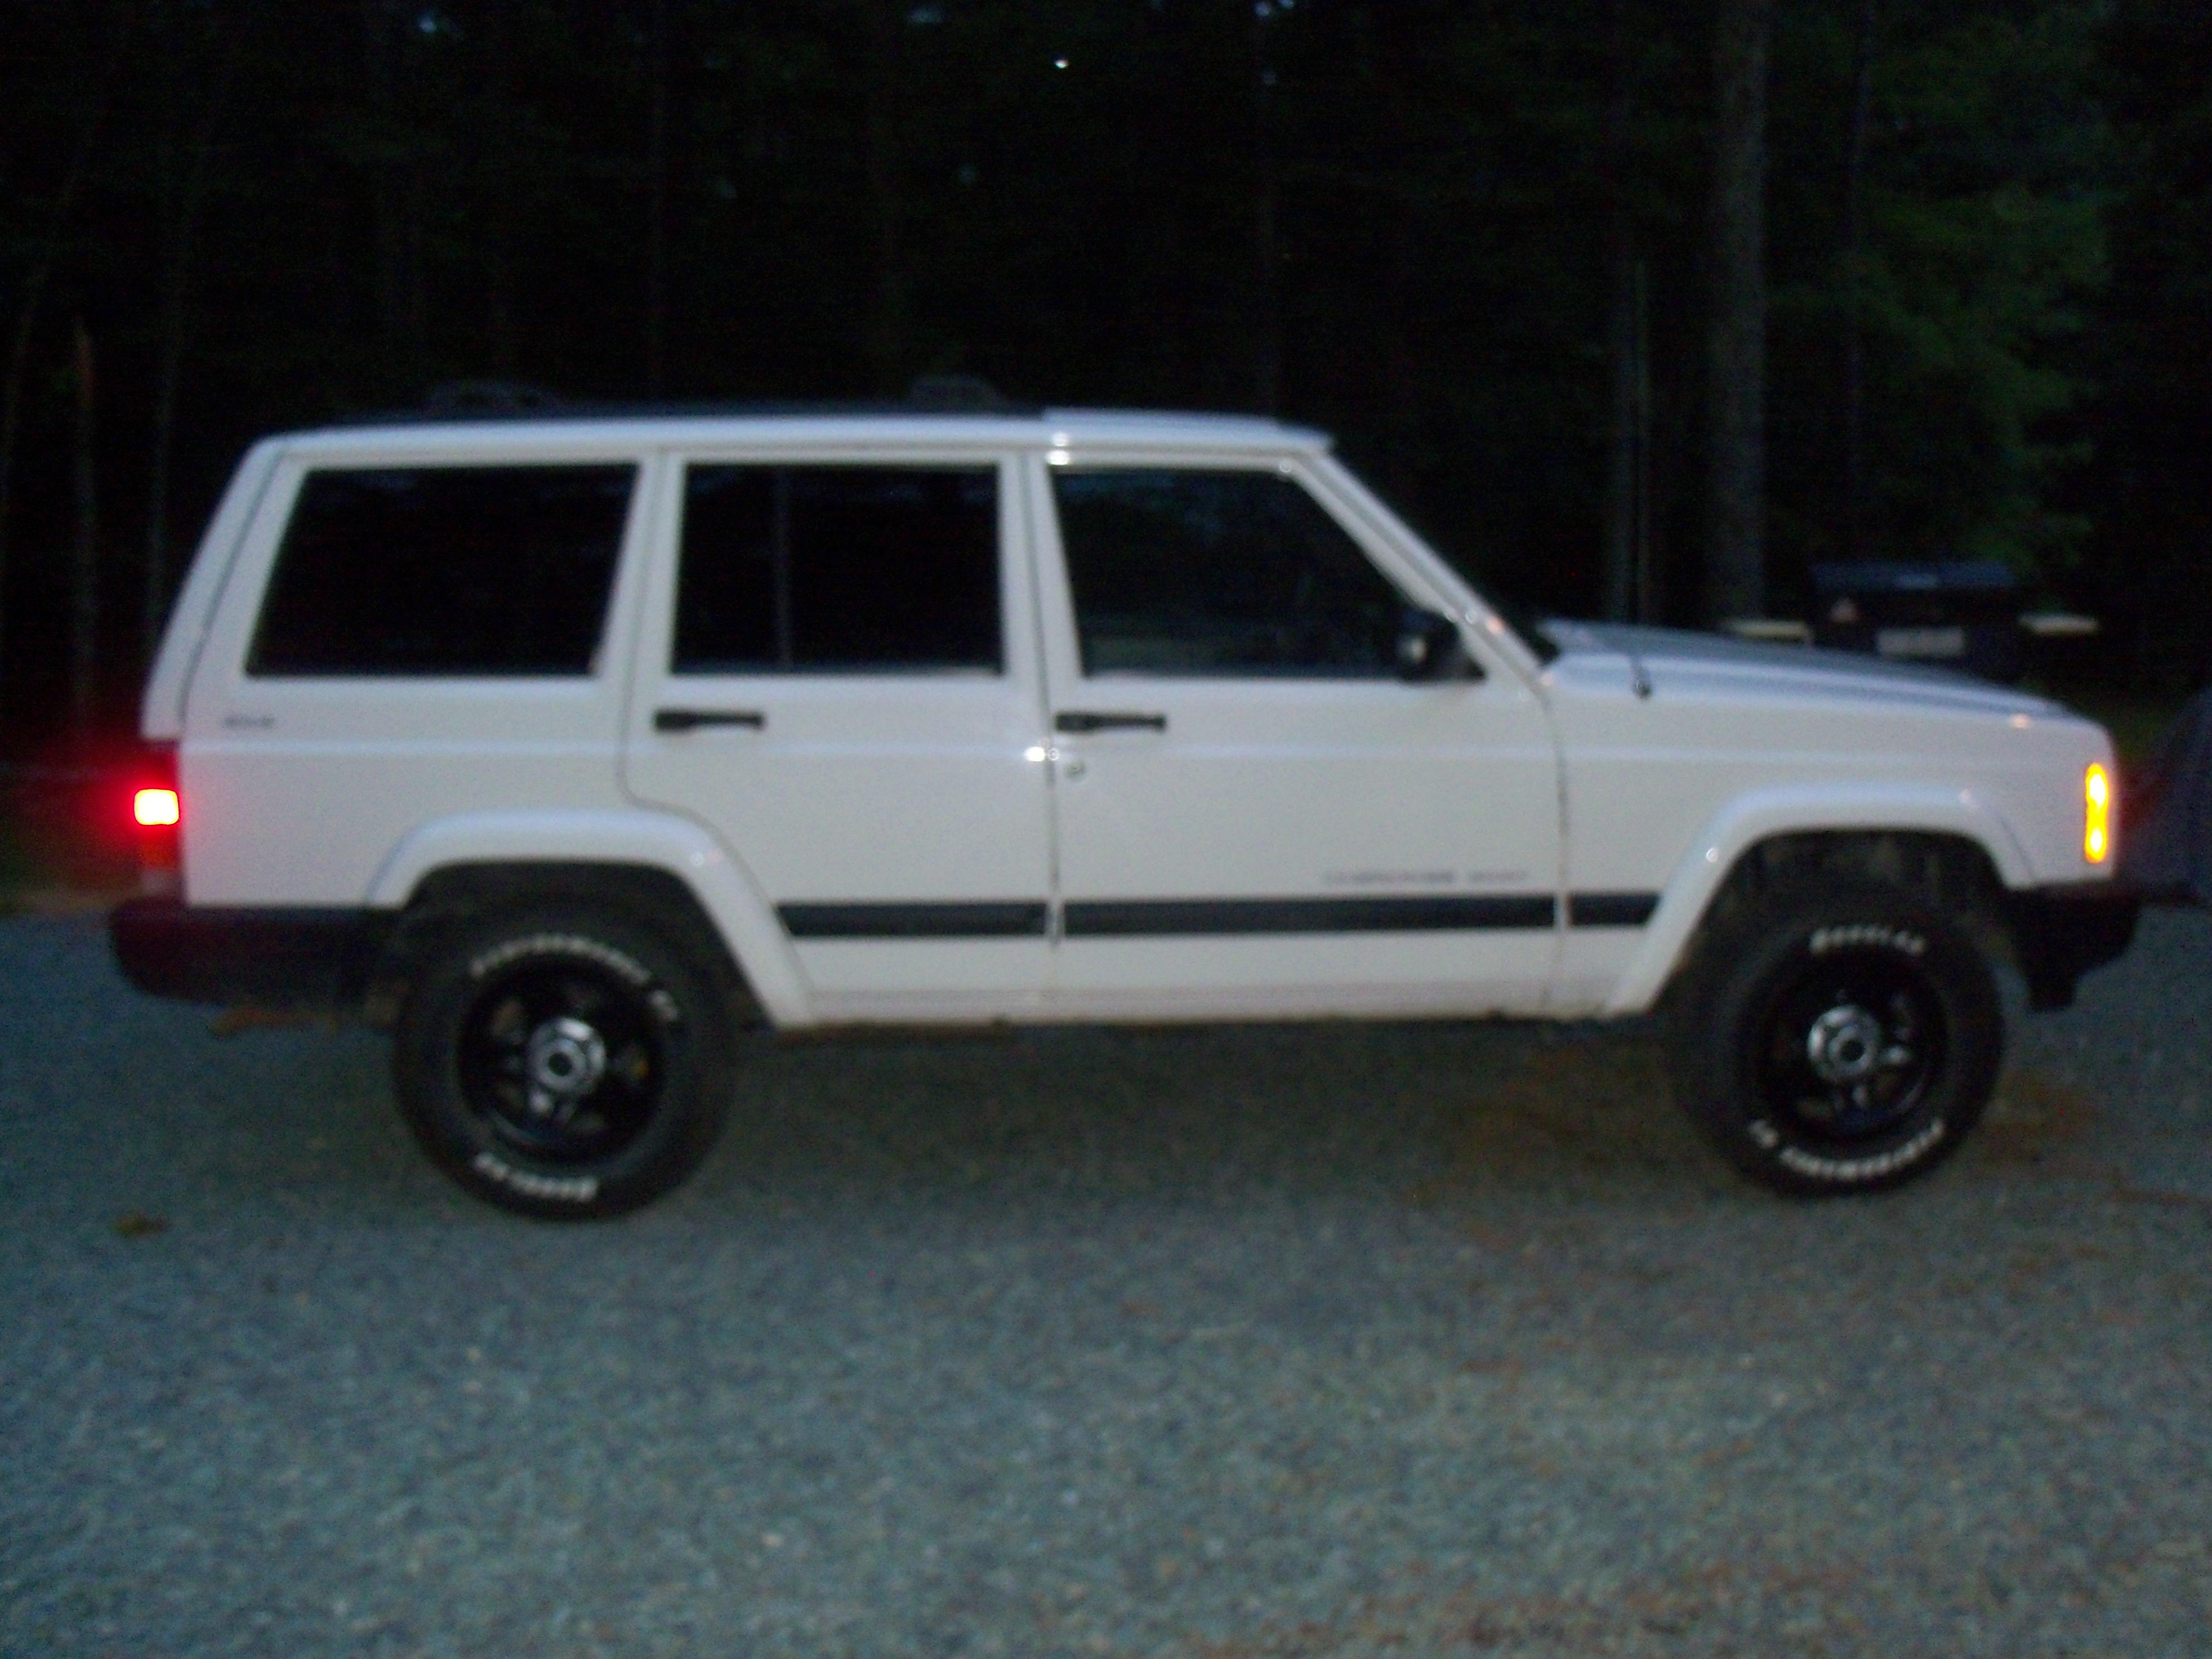 hlleary's 1999 Jeep Cherokee